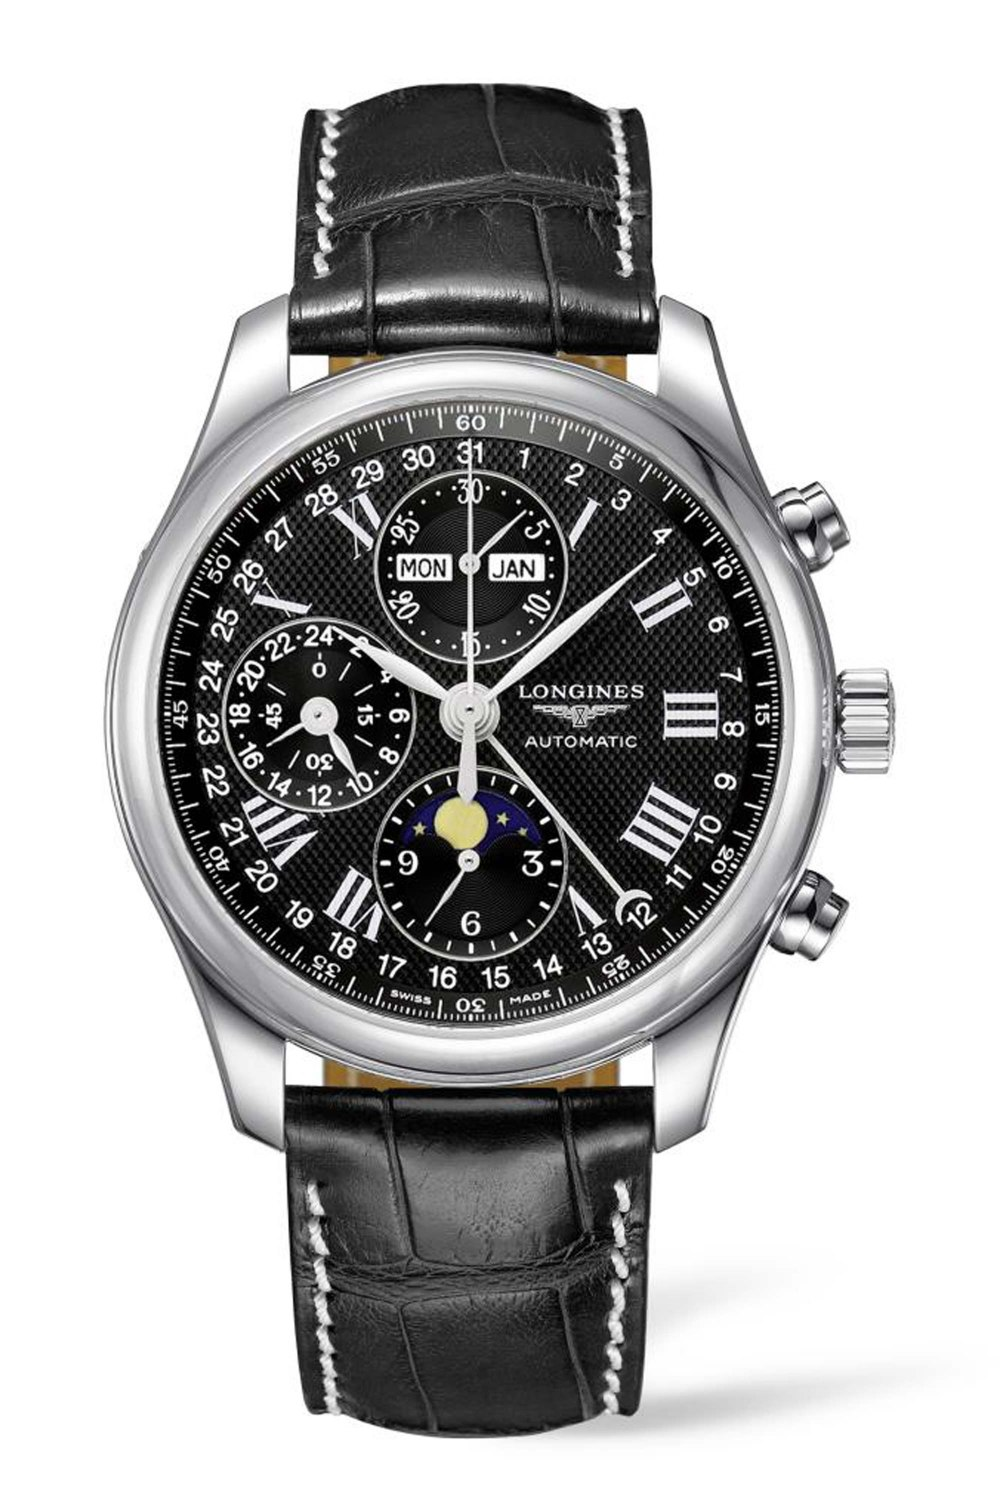 LONGINES The Longines Master Collection L2.773.4.51.7